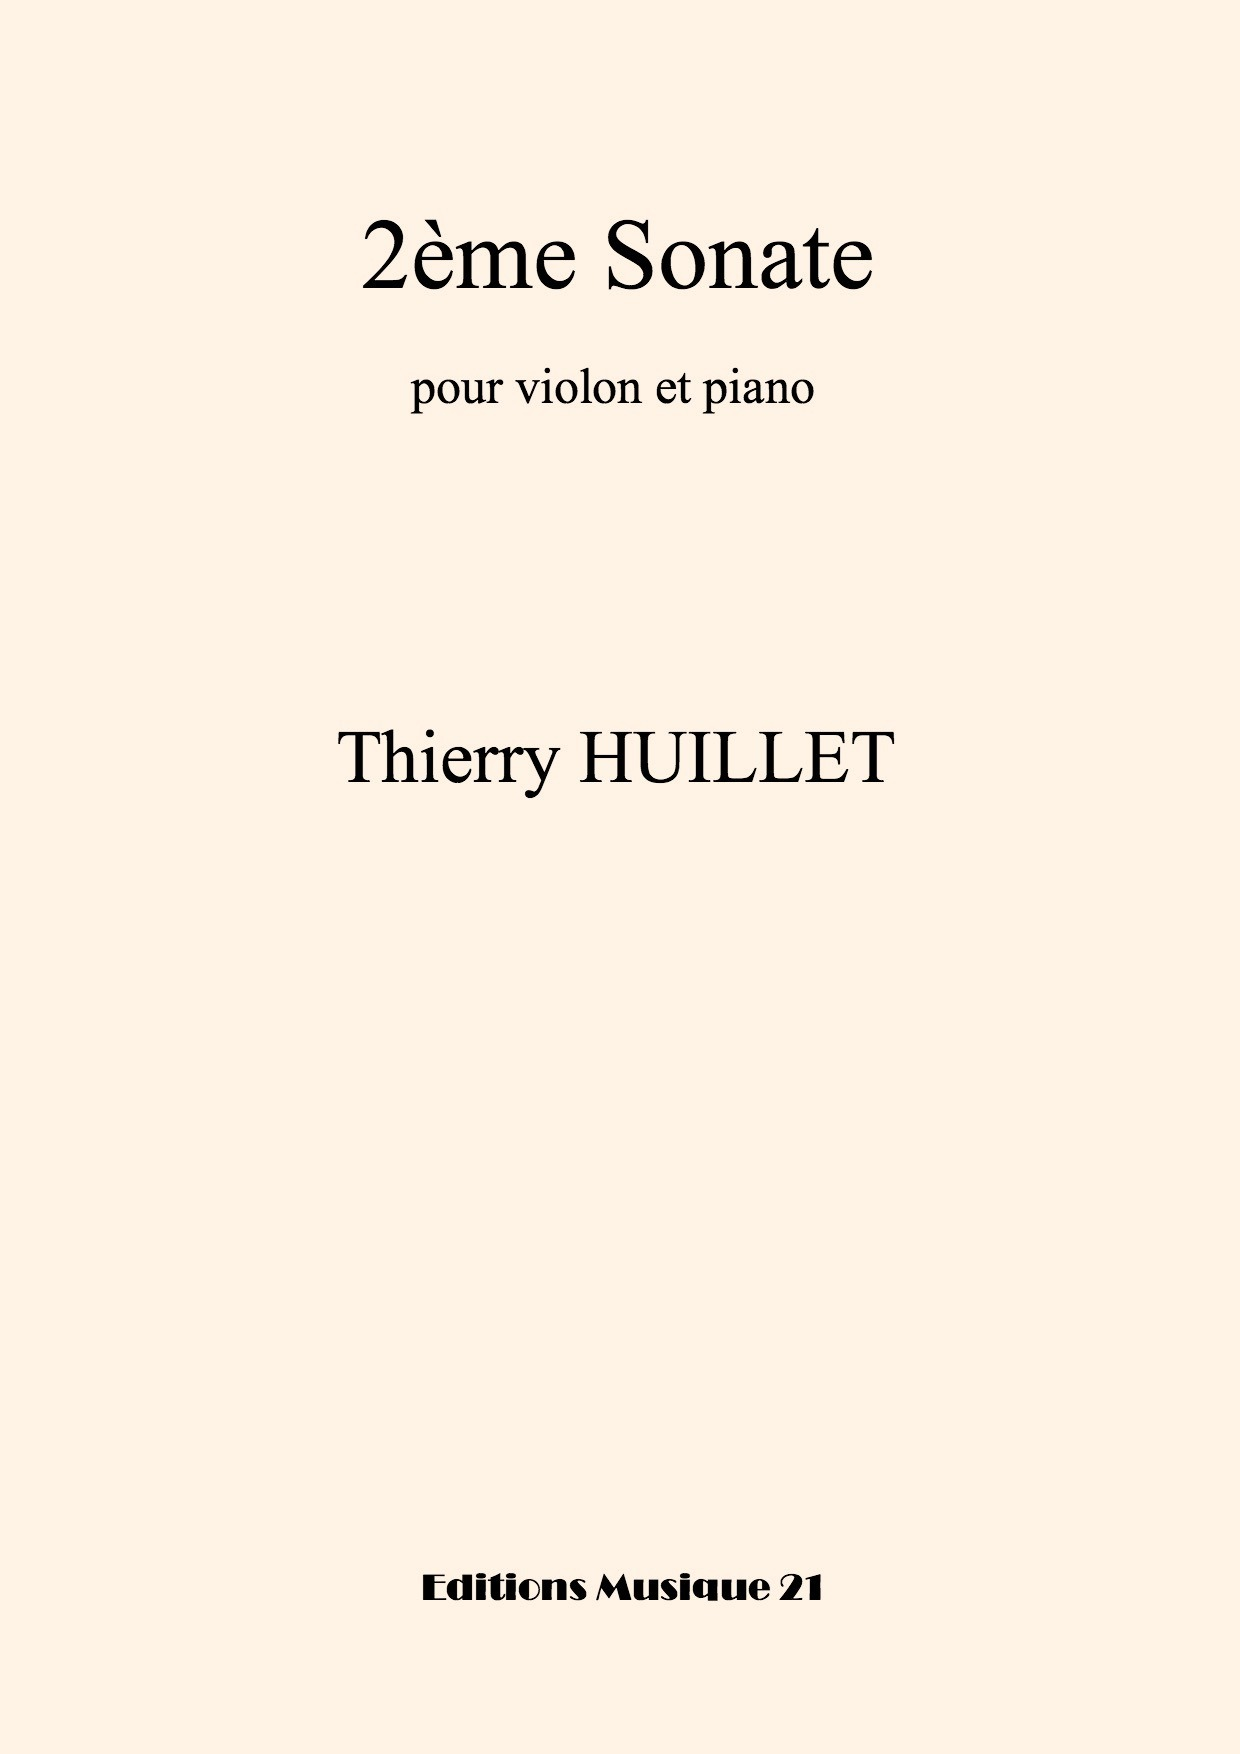 Thierry HUILLET – 2nd Sonata For Violin And Piano